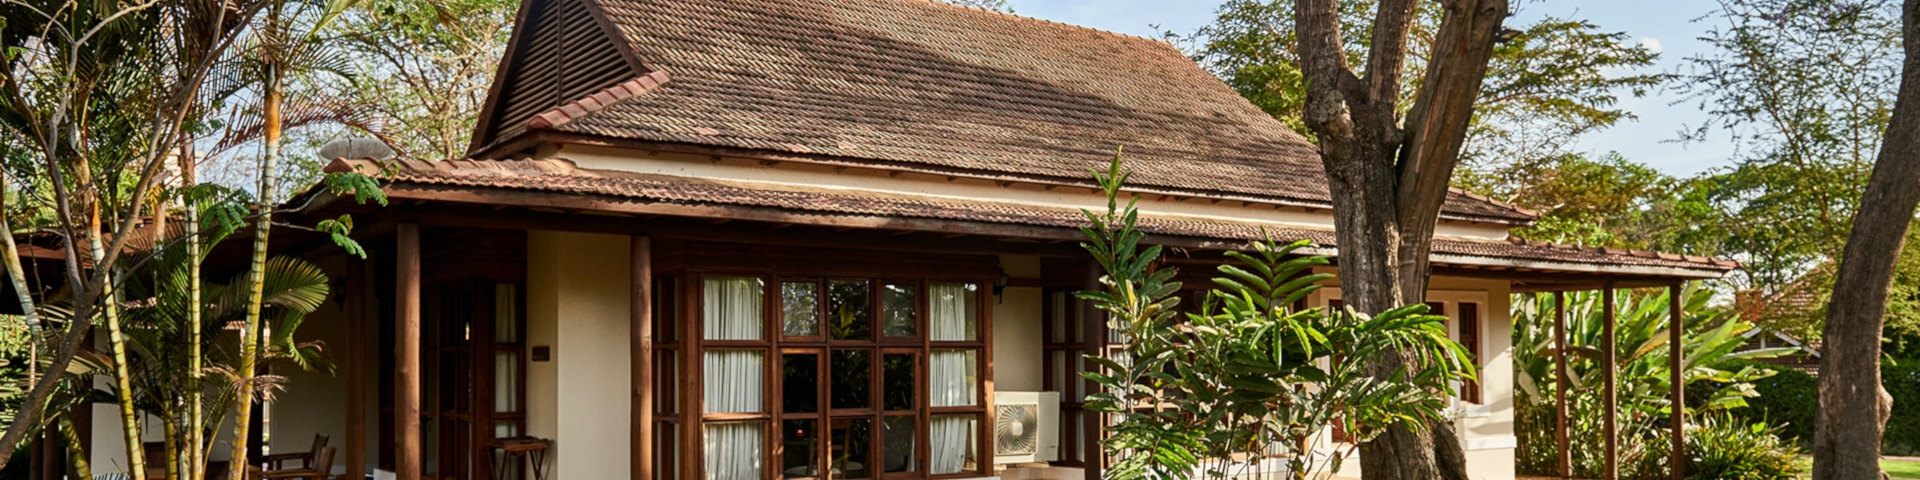 Accommodation in Arusha Tanzania Legendary Lodge Cottage